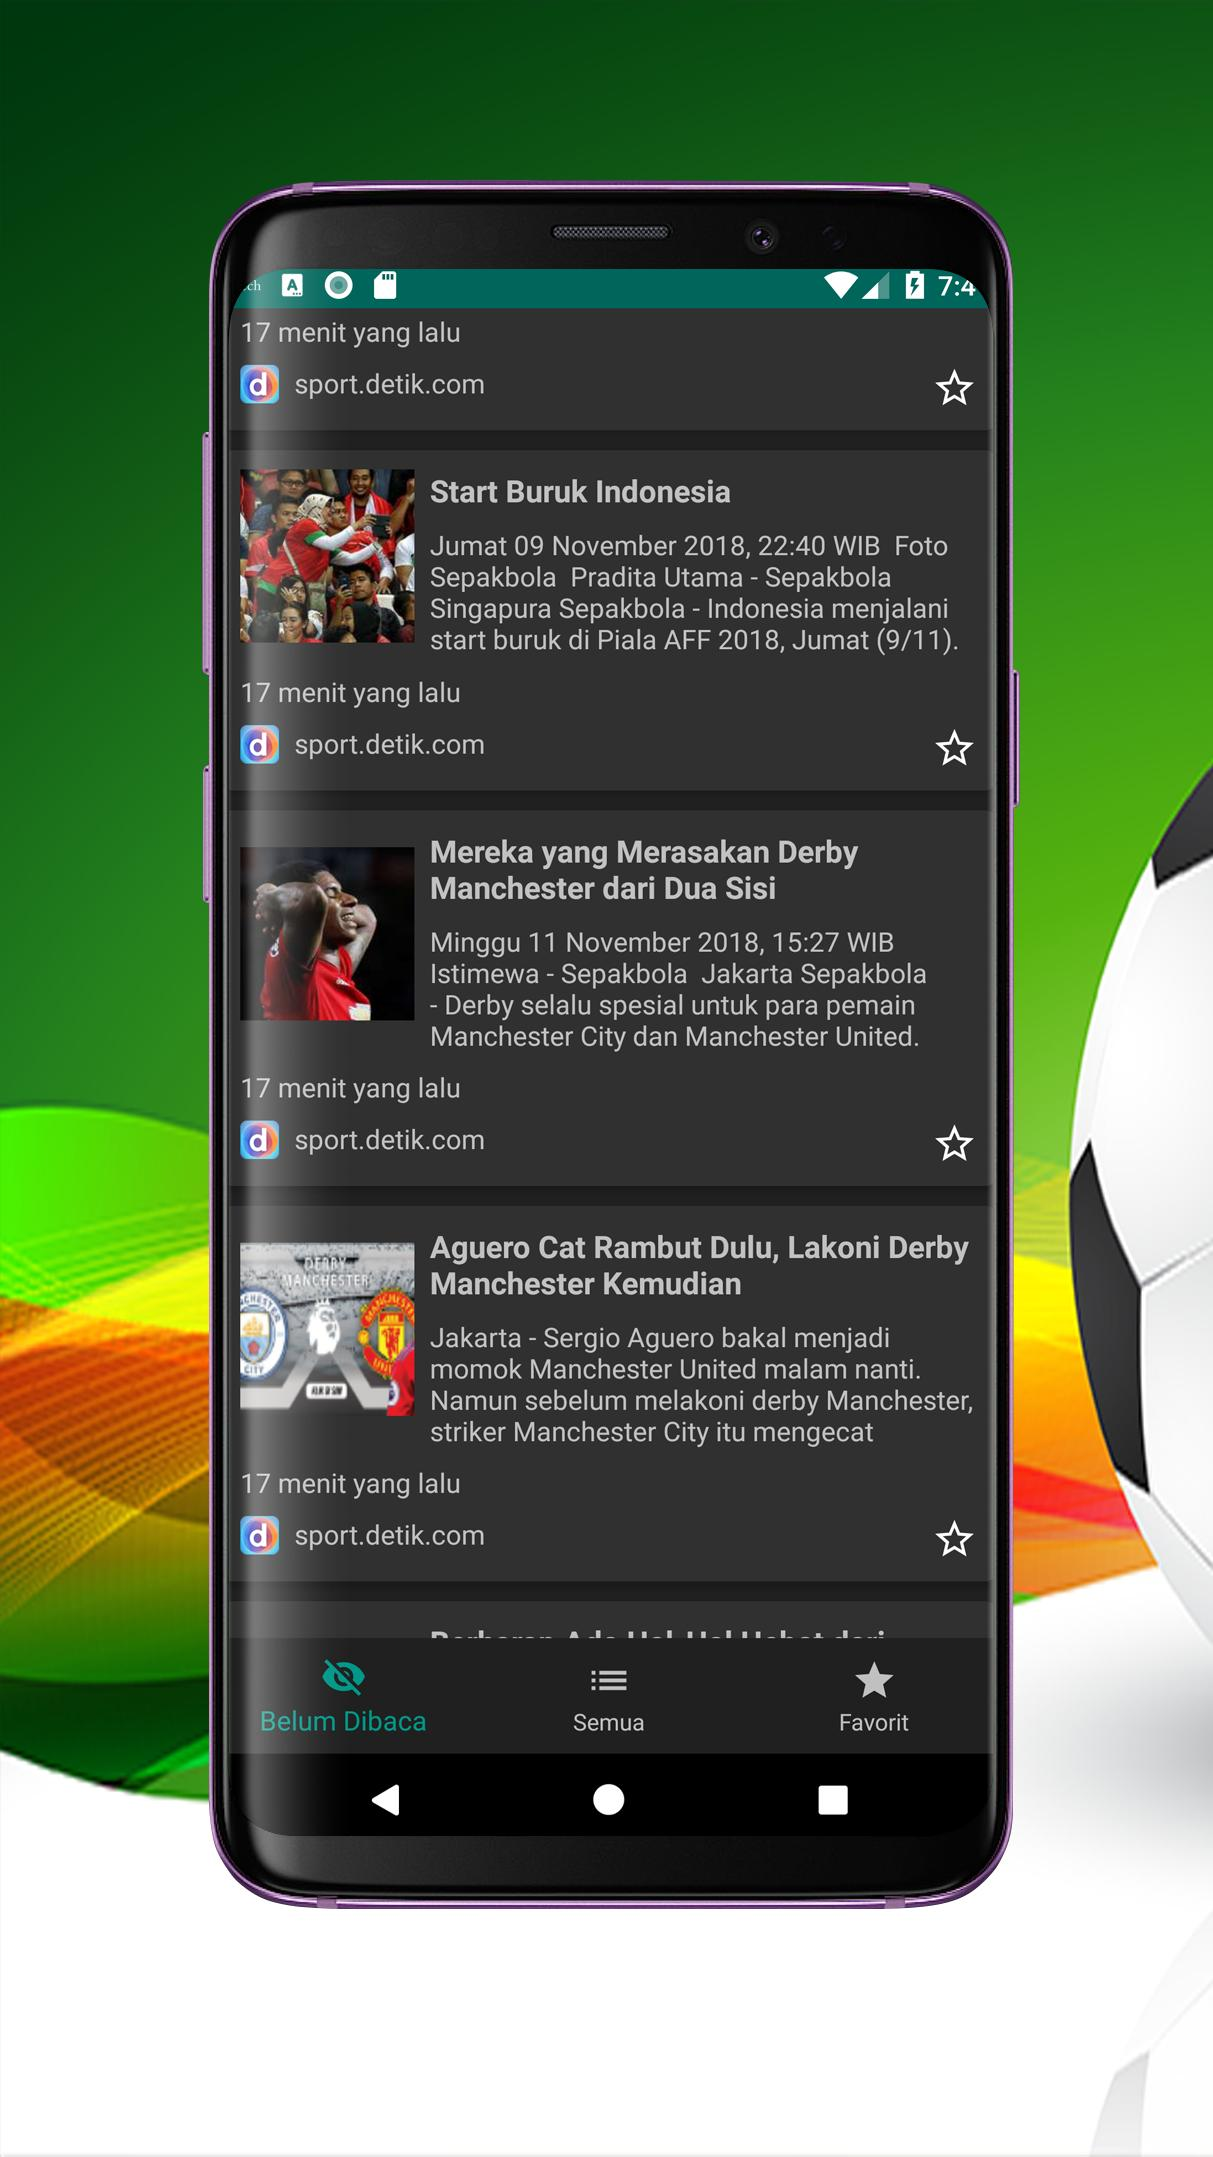 Berita Sepak Bola For Android APK Download